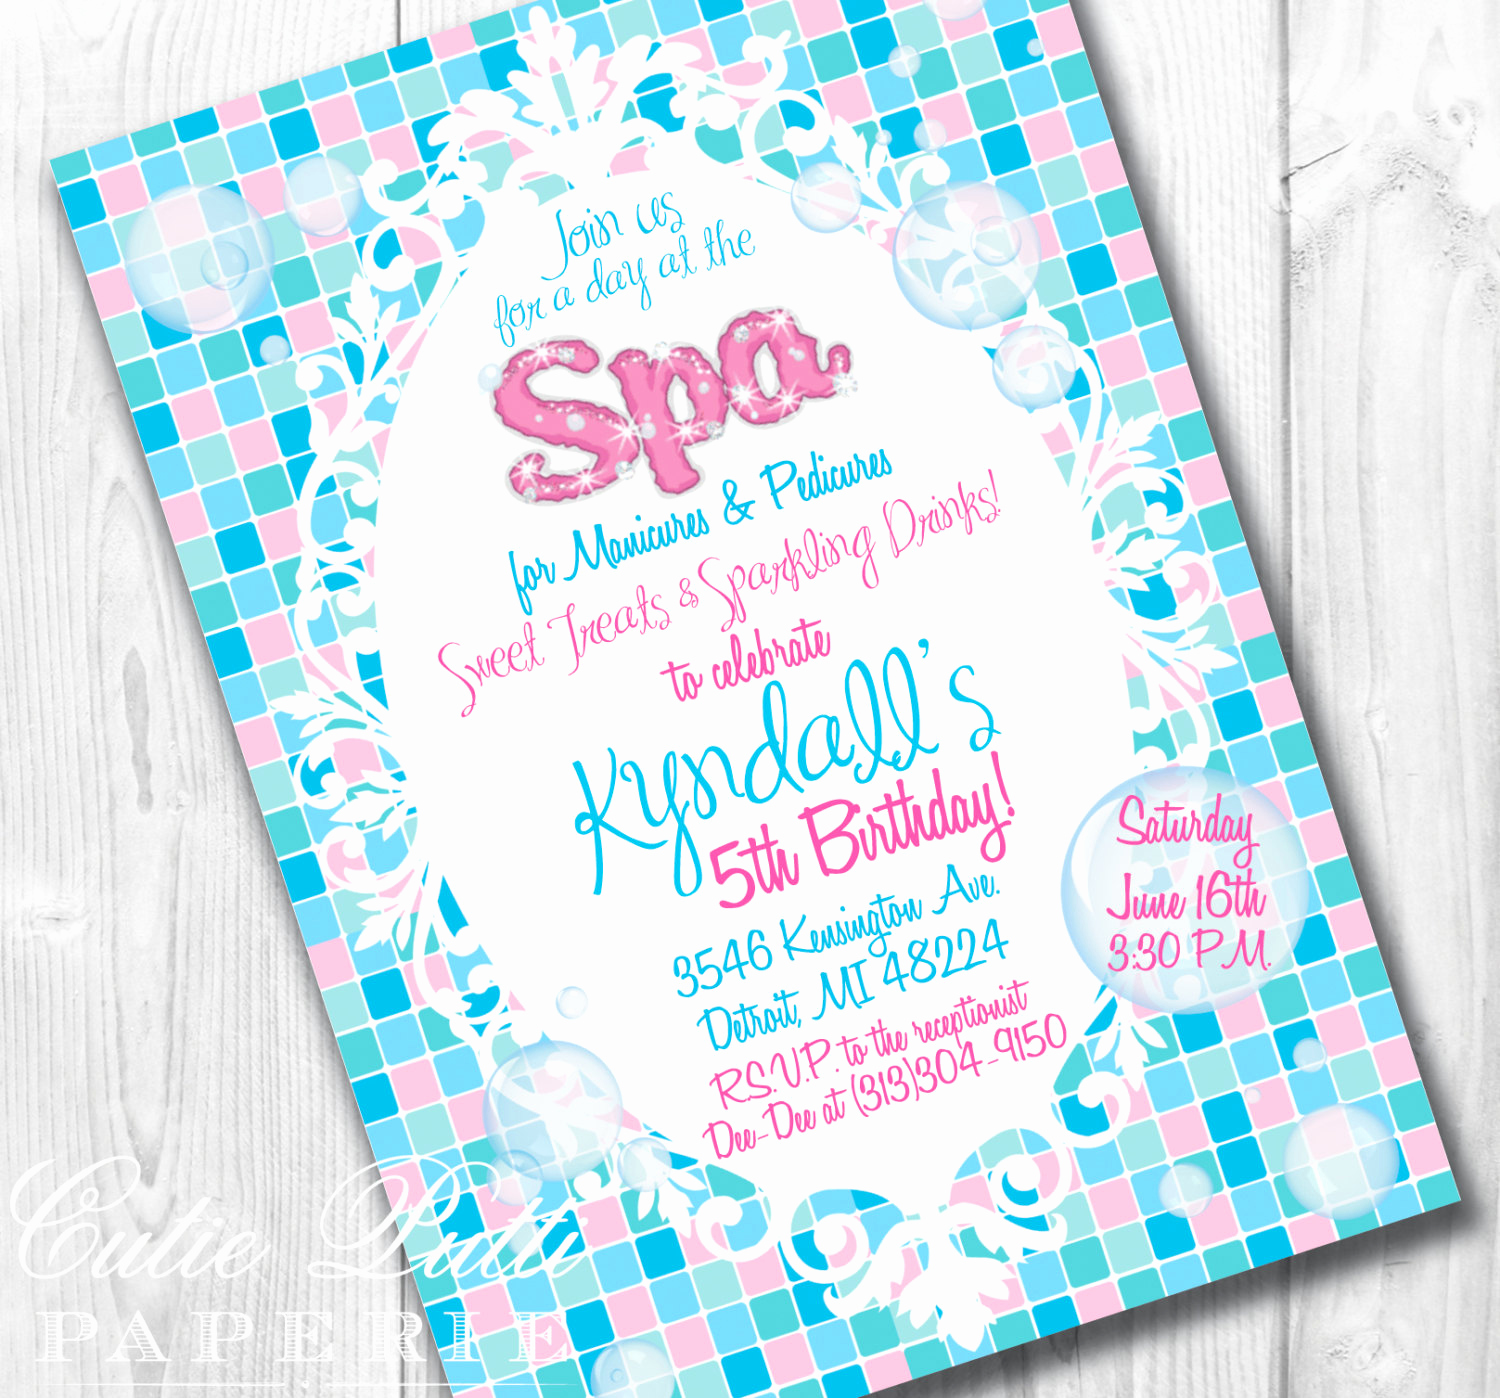 Spa Party Invitation Template Free Inspirational Spa Party Invitations Printable Custom Invitations by Cutie